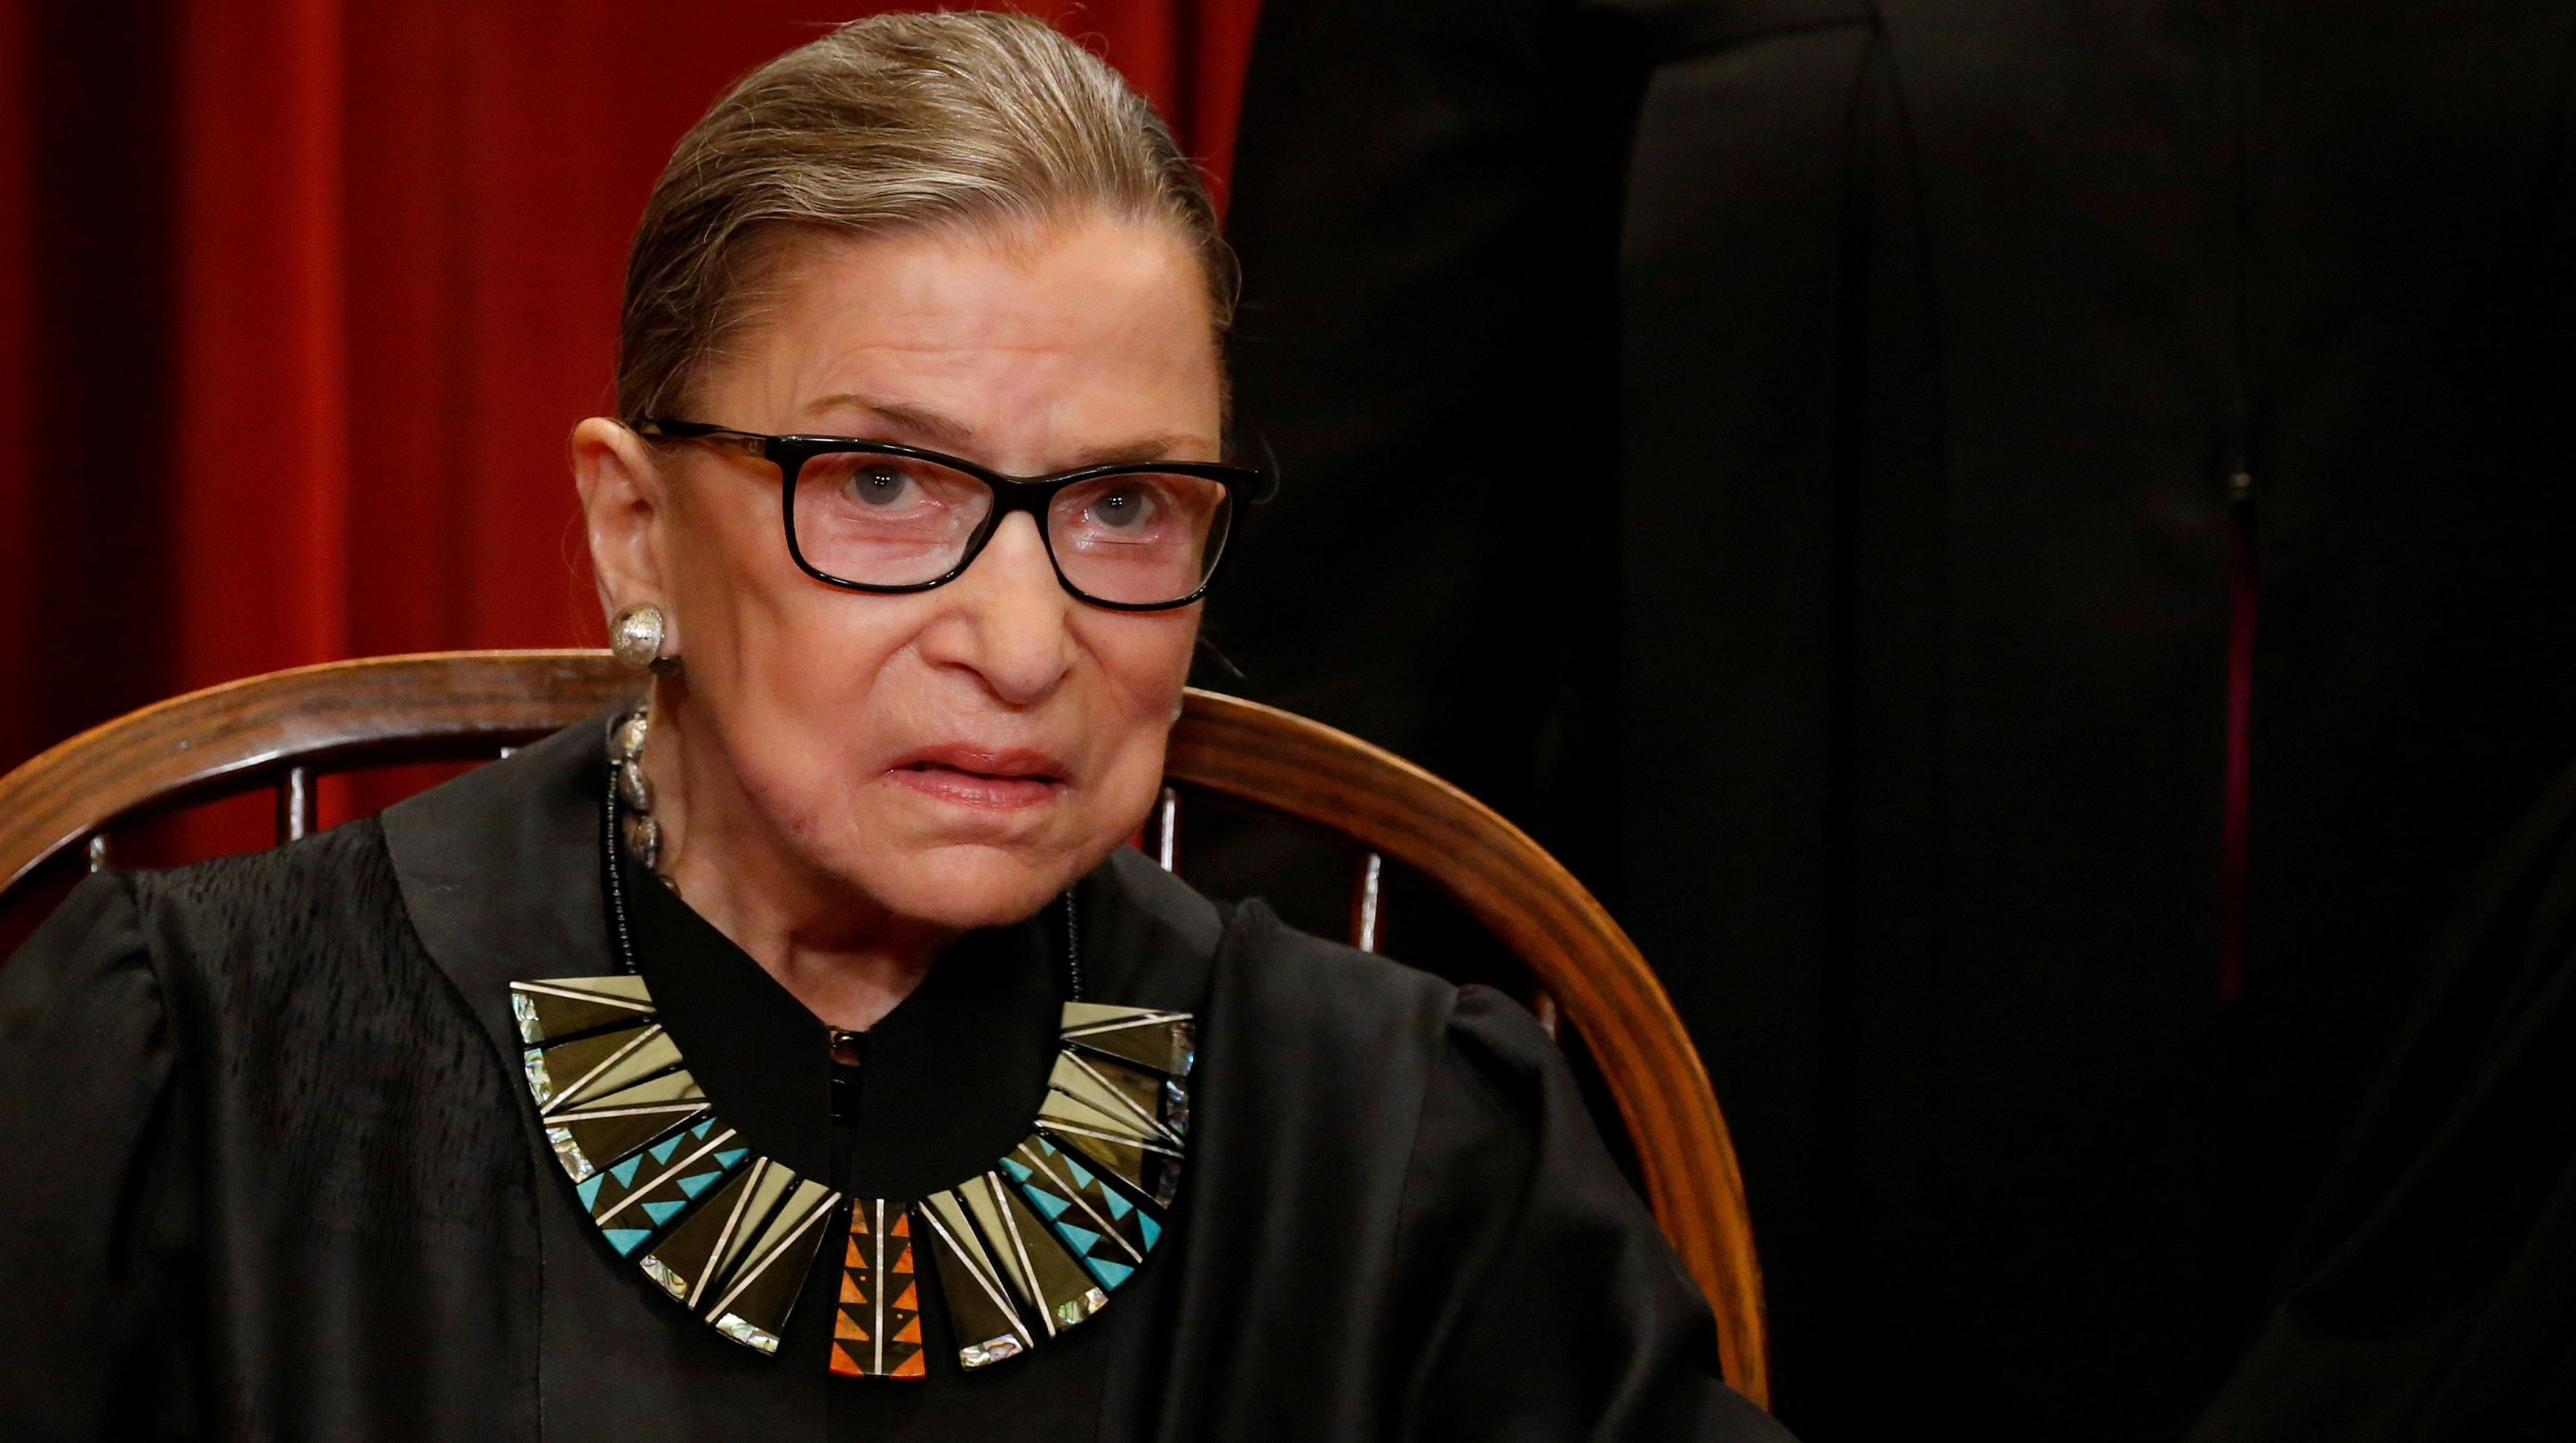 Justice Ruth Bader Ginsburg's fractured ribs led to discovery of lung cancer